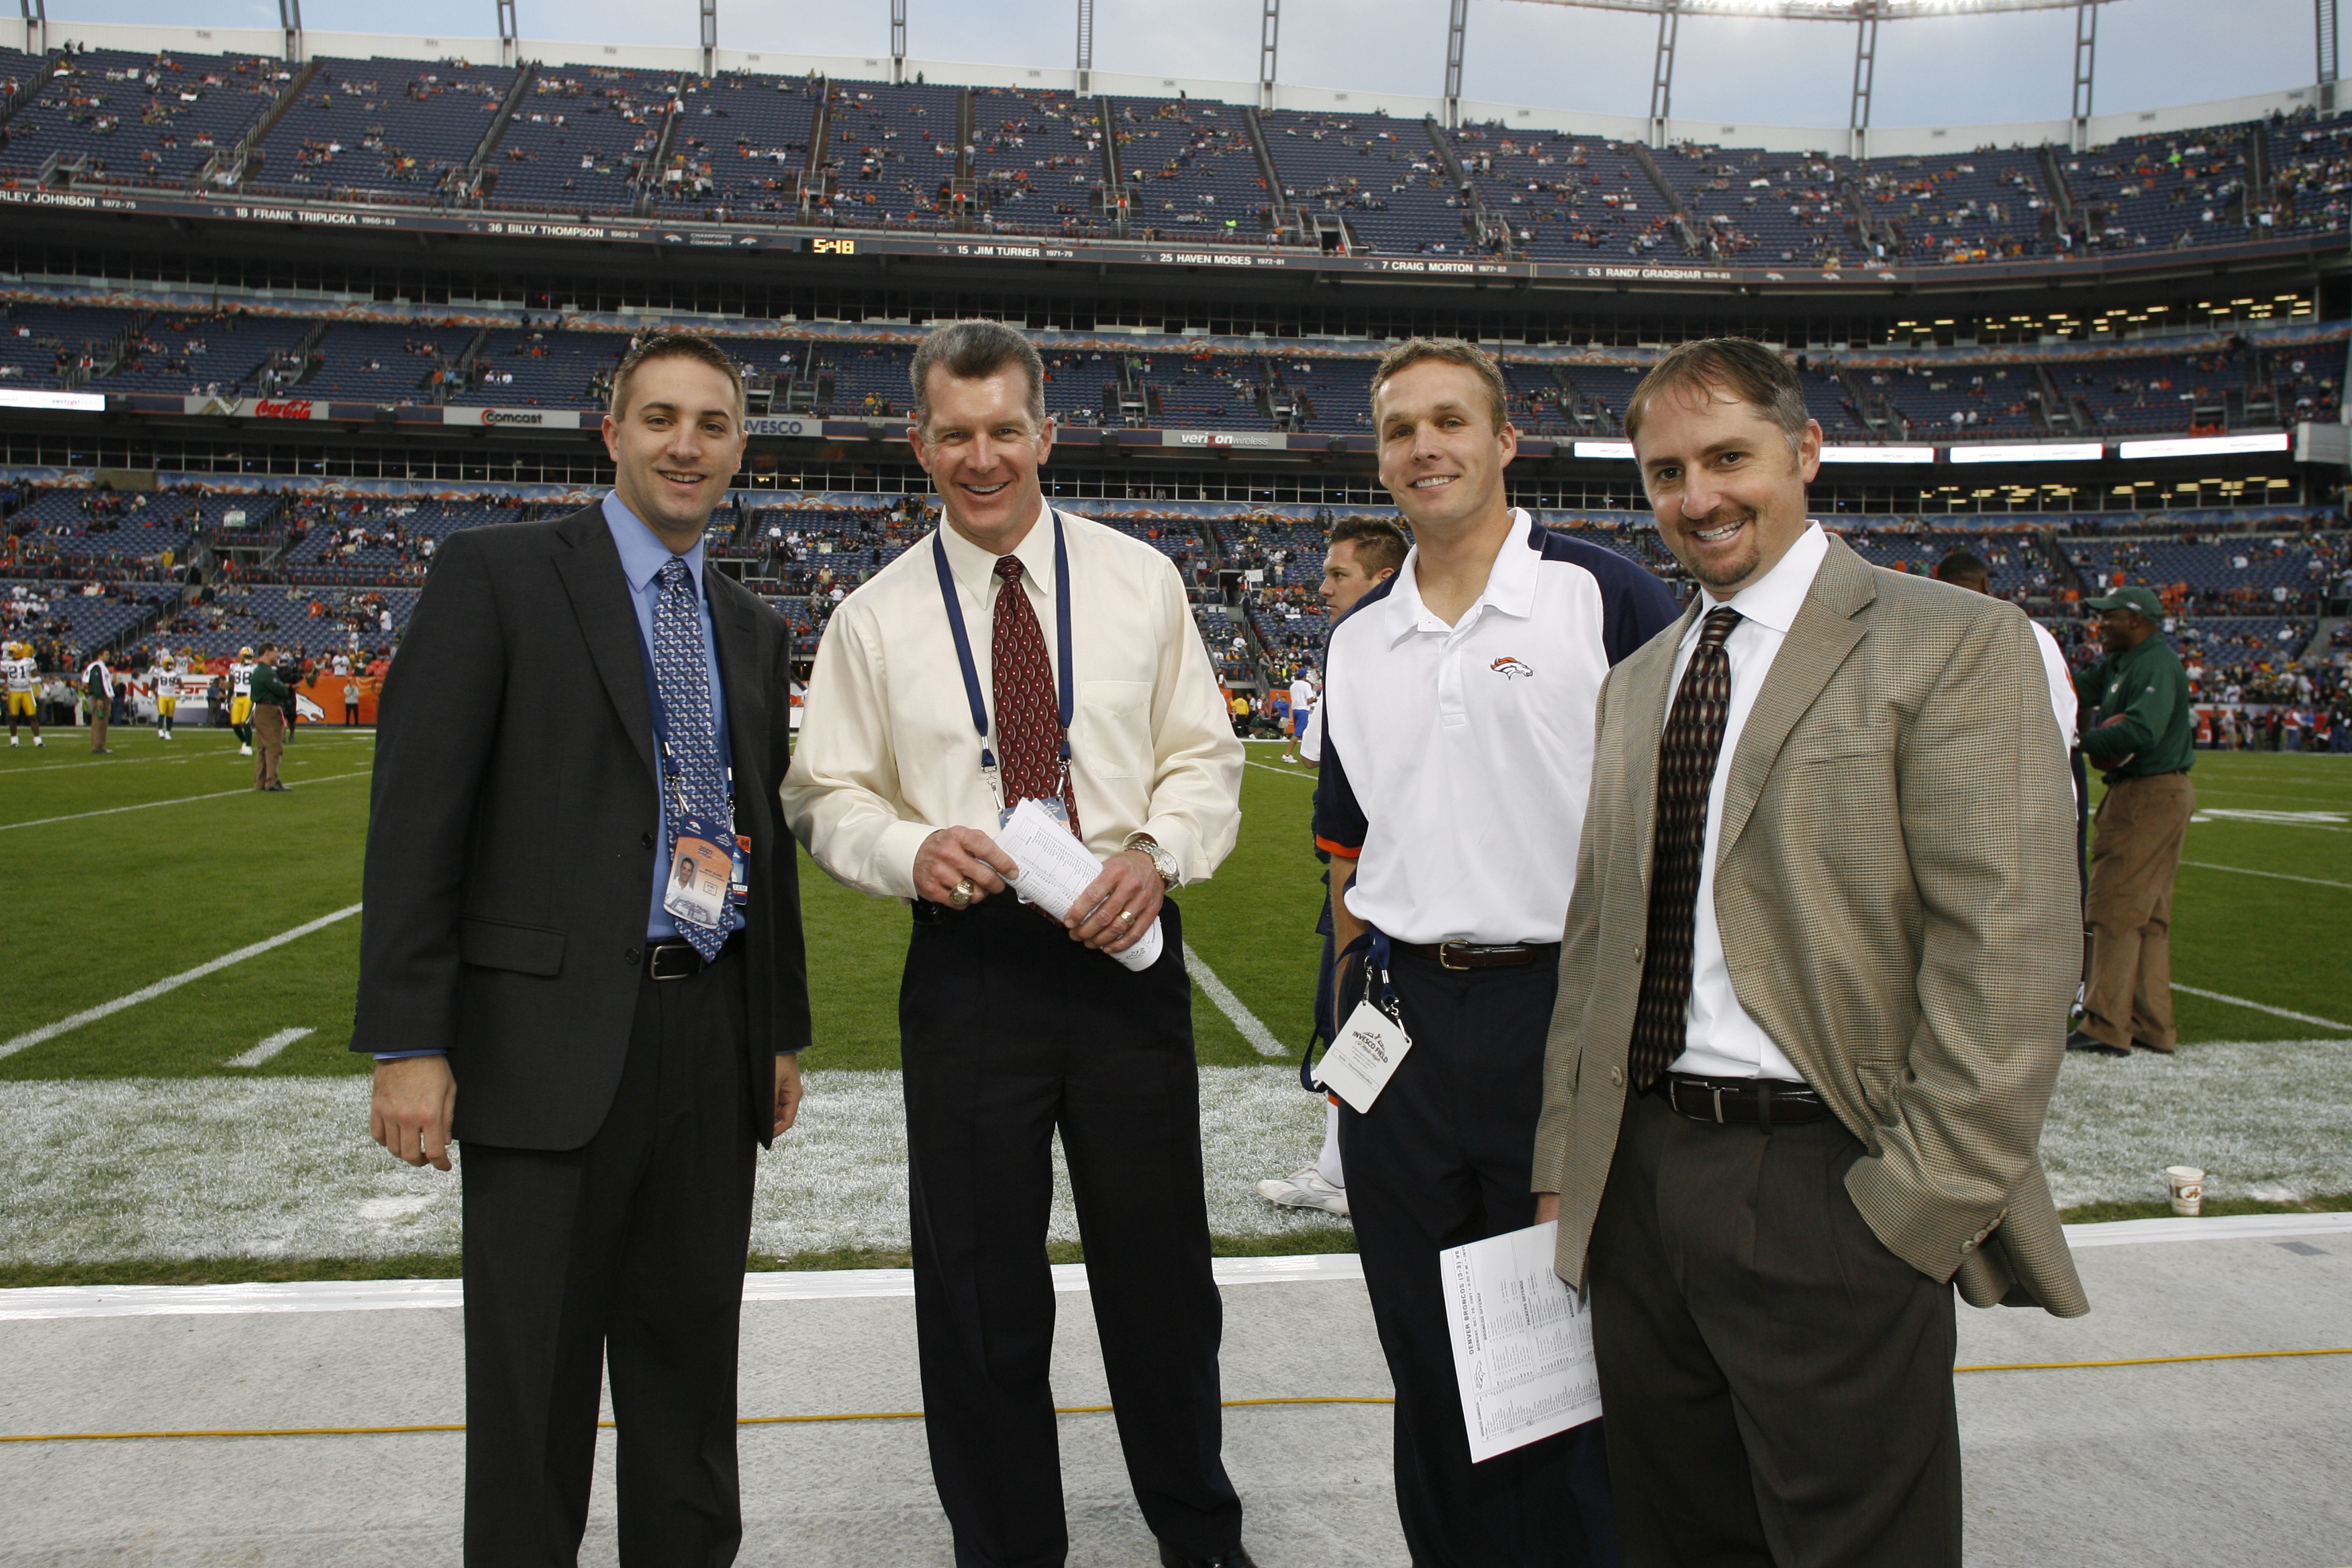 Denver Broncos personnel staff. L to R: Mike Bluem, Ted Sunquist, Dave Bratten and Chris Trulove.